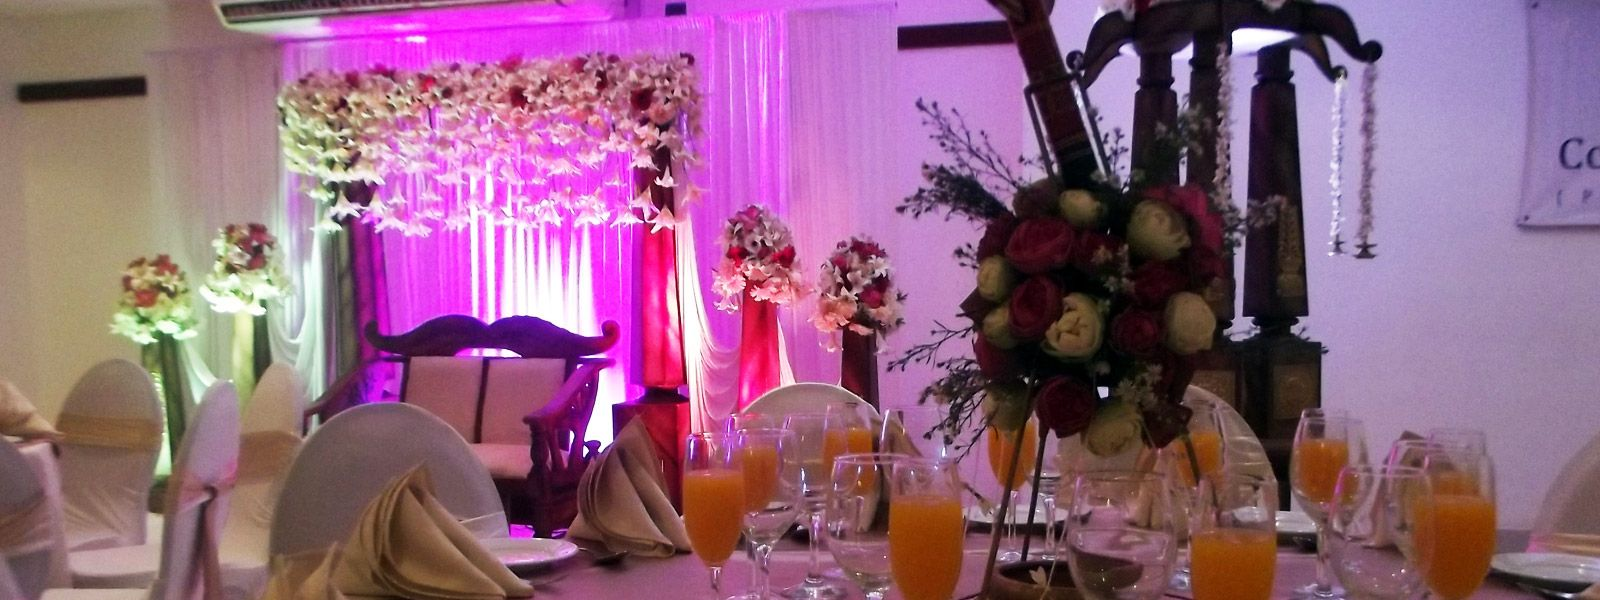 wedding reception venues cost%0A Weddings and Banquets  Monnara u     Banquet   Our Banquet   conference hall can  accommodate